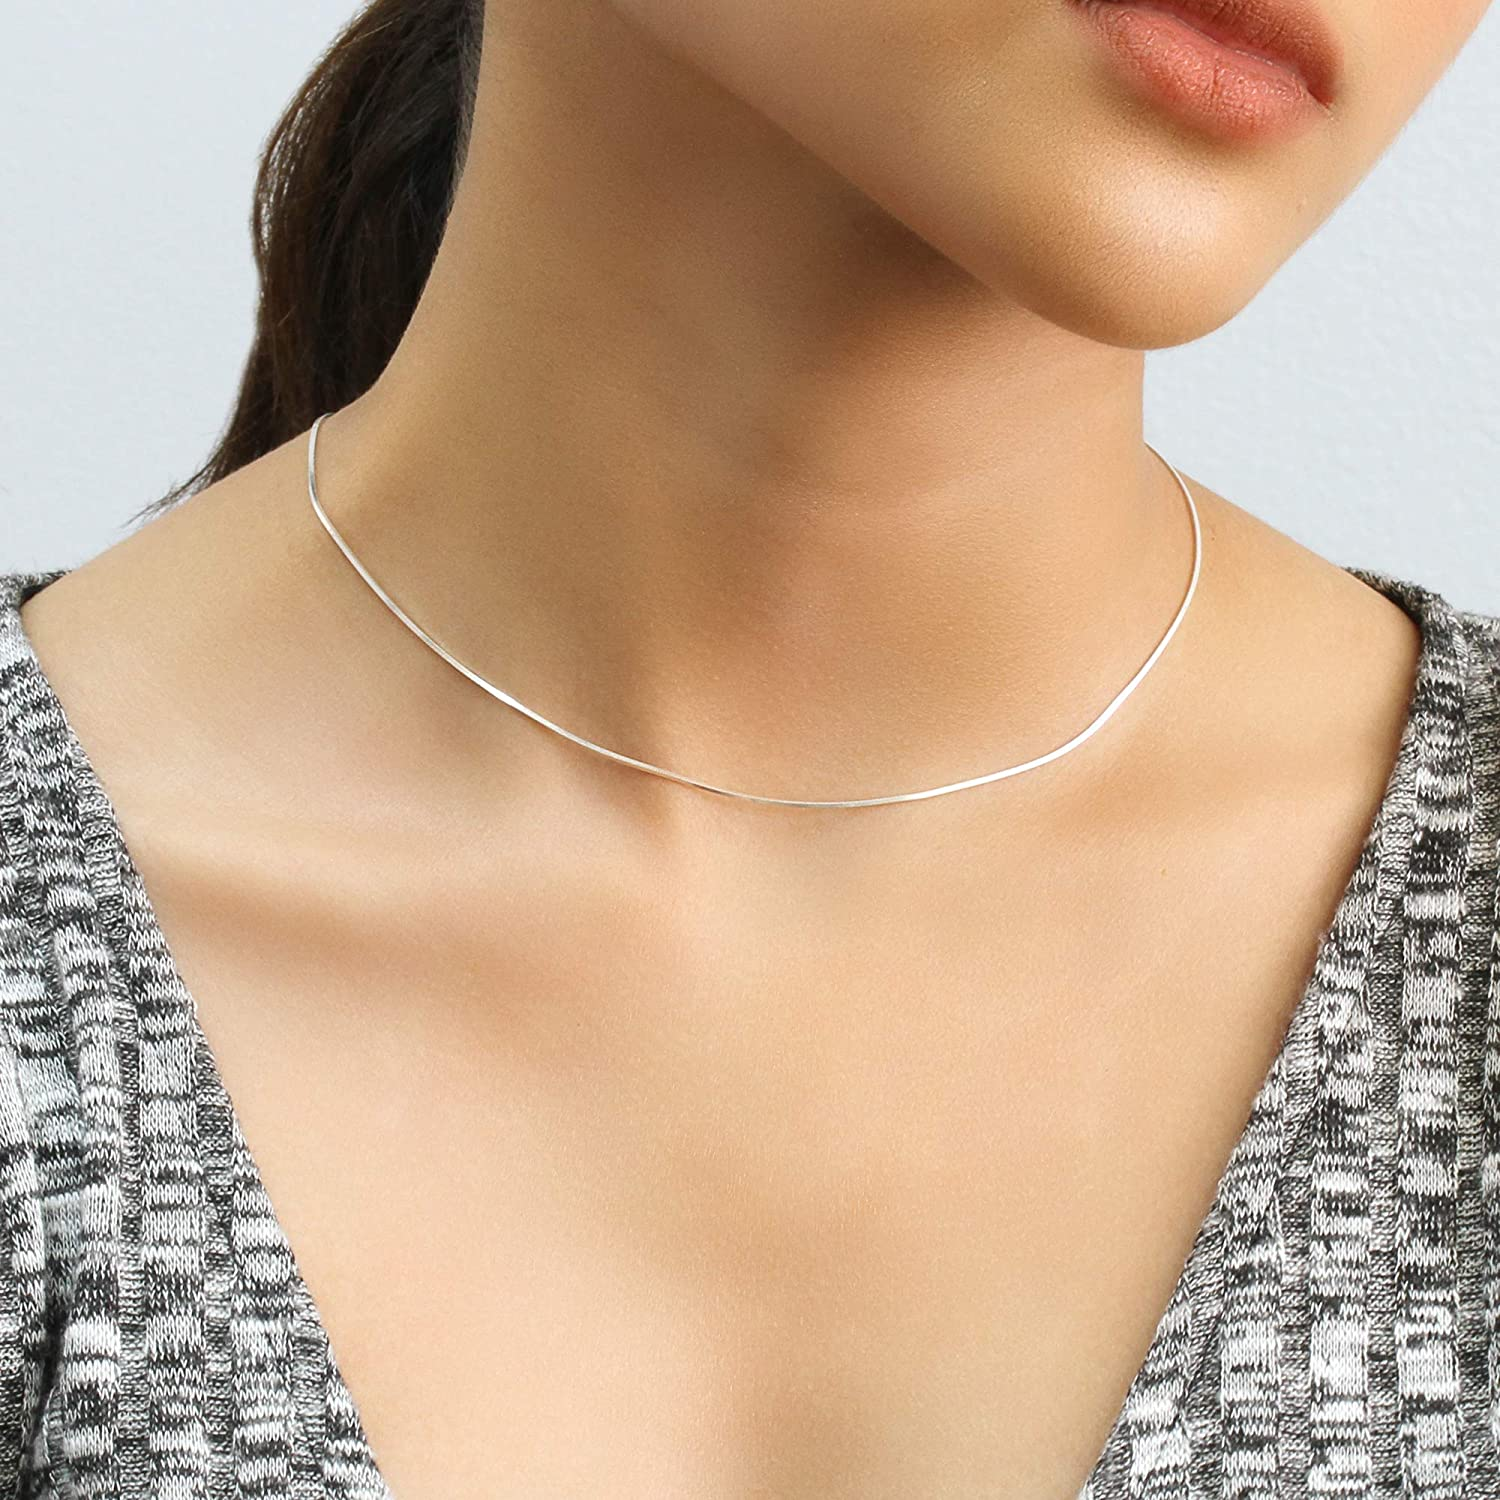 16, 18, 20, 22, 24, 30 Inch Double Accent 0.7mm Sterling Silver Italian Chain Necklace 8 Sided Snake Chain